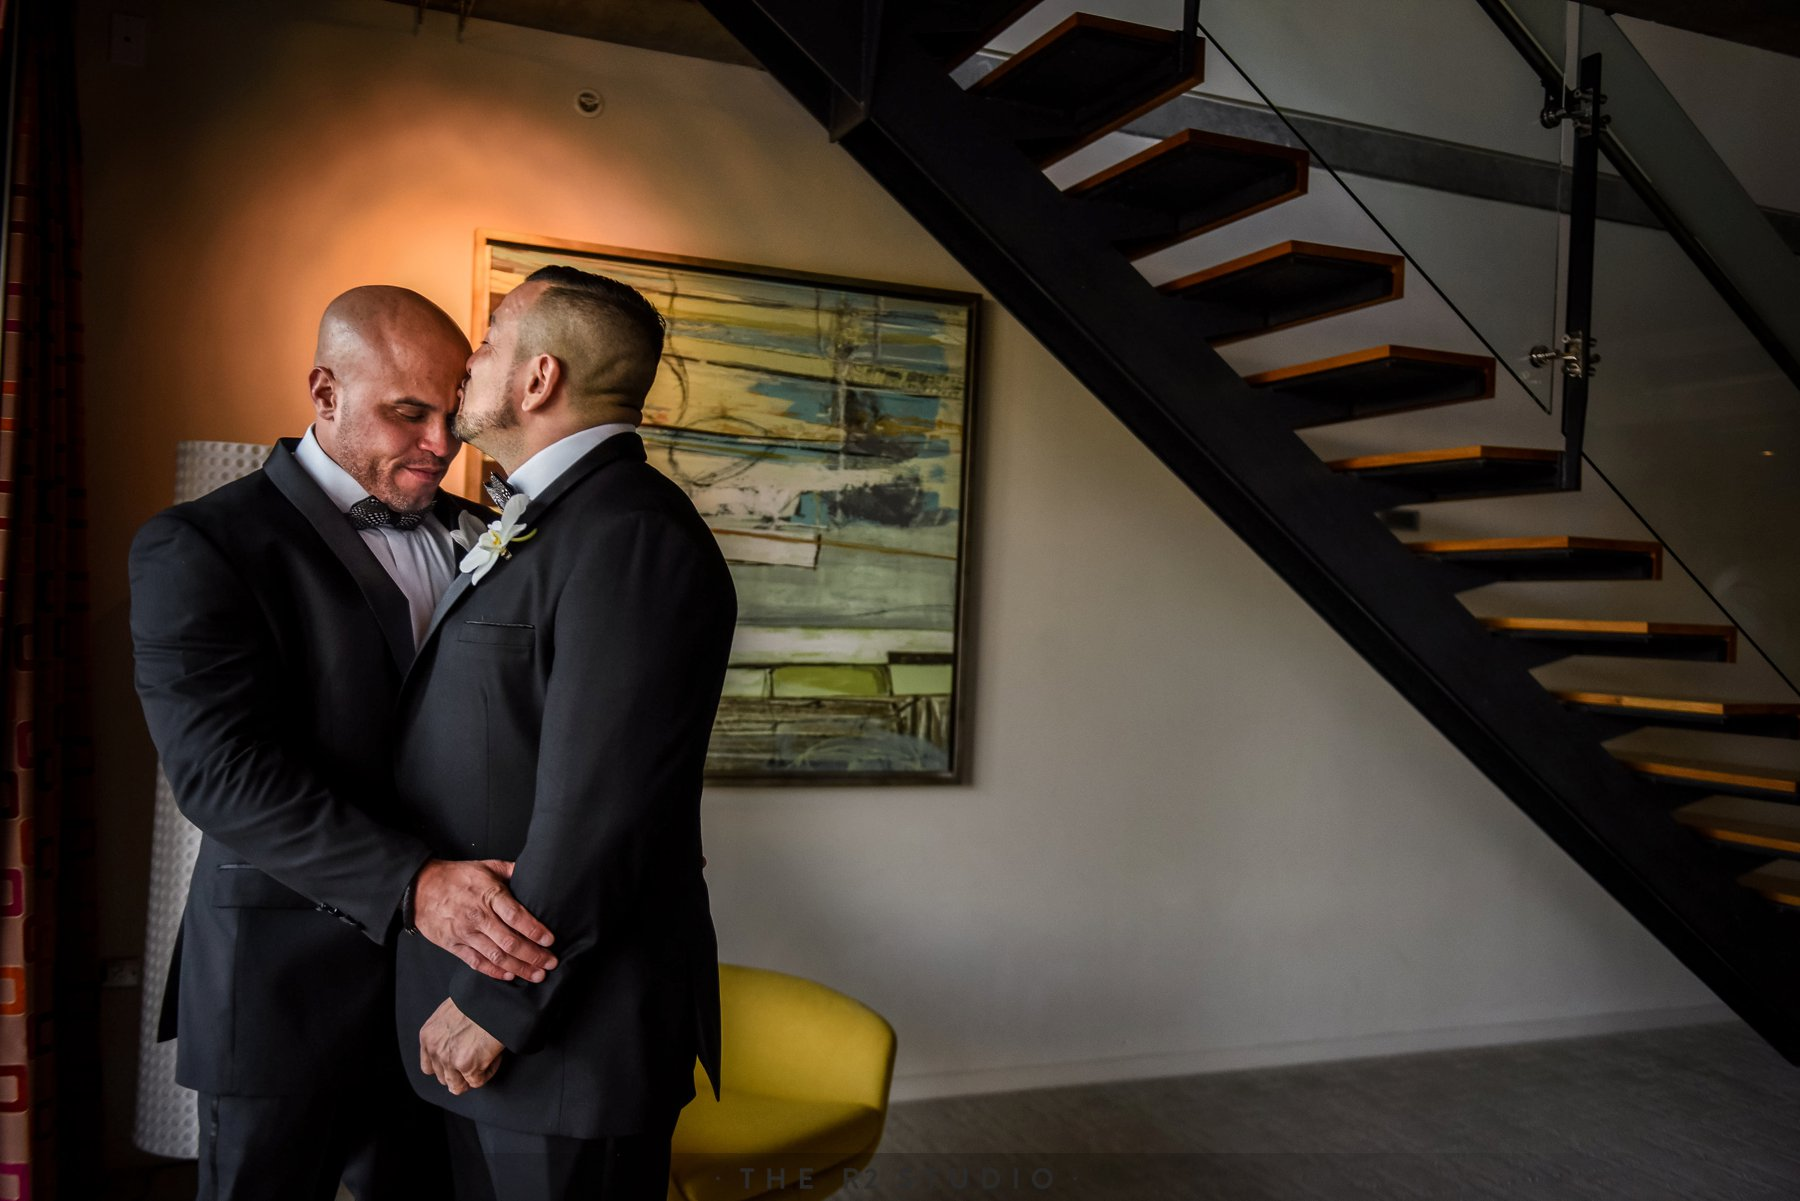 valley-ho-gay-wedding-2014ther2studio-142